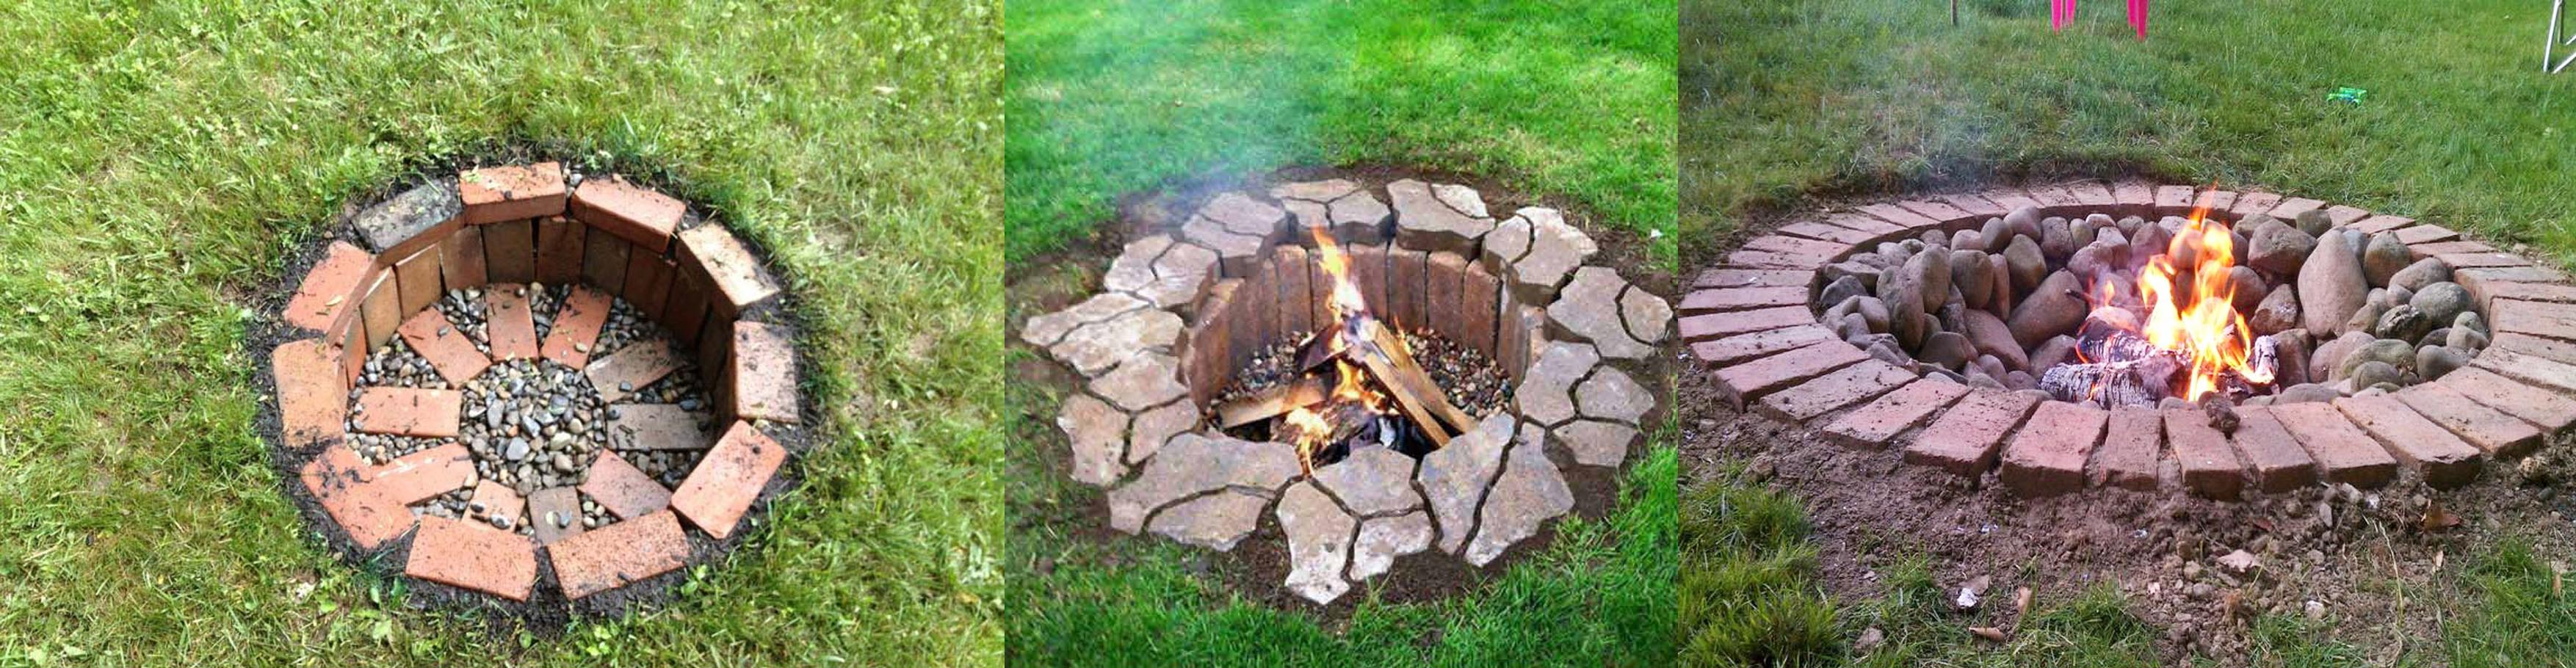 outdoor-fire-pit-with-easy-fire-pit-design-for-modern-patio-custom-fire-pits